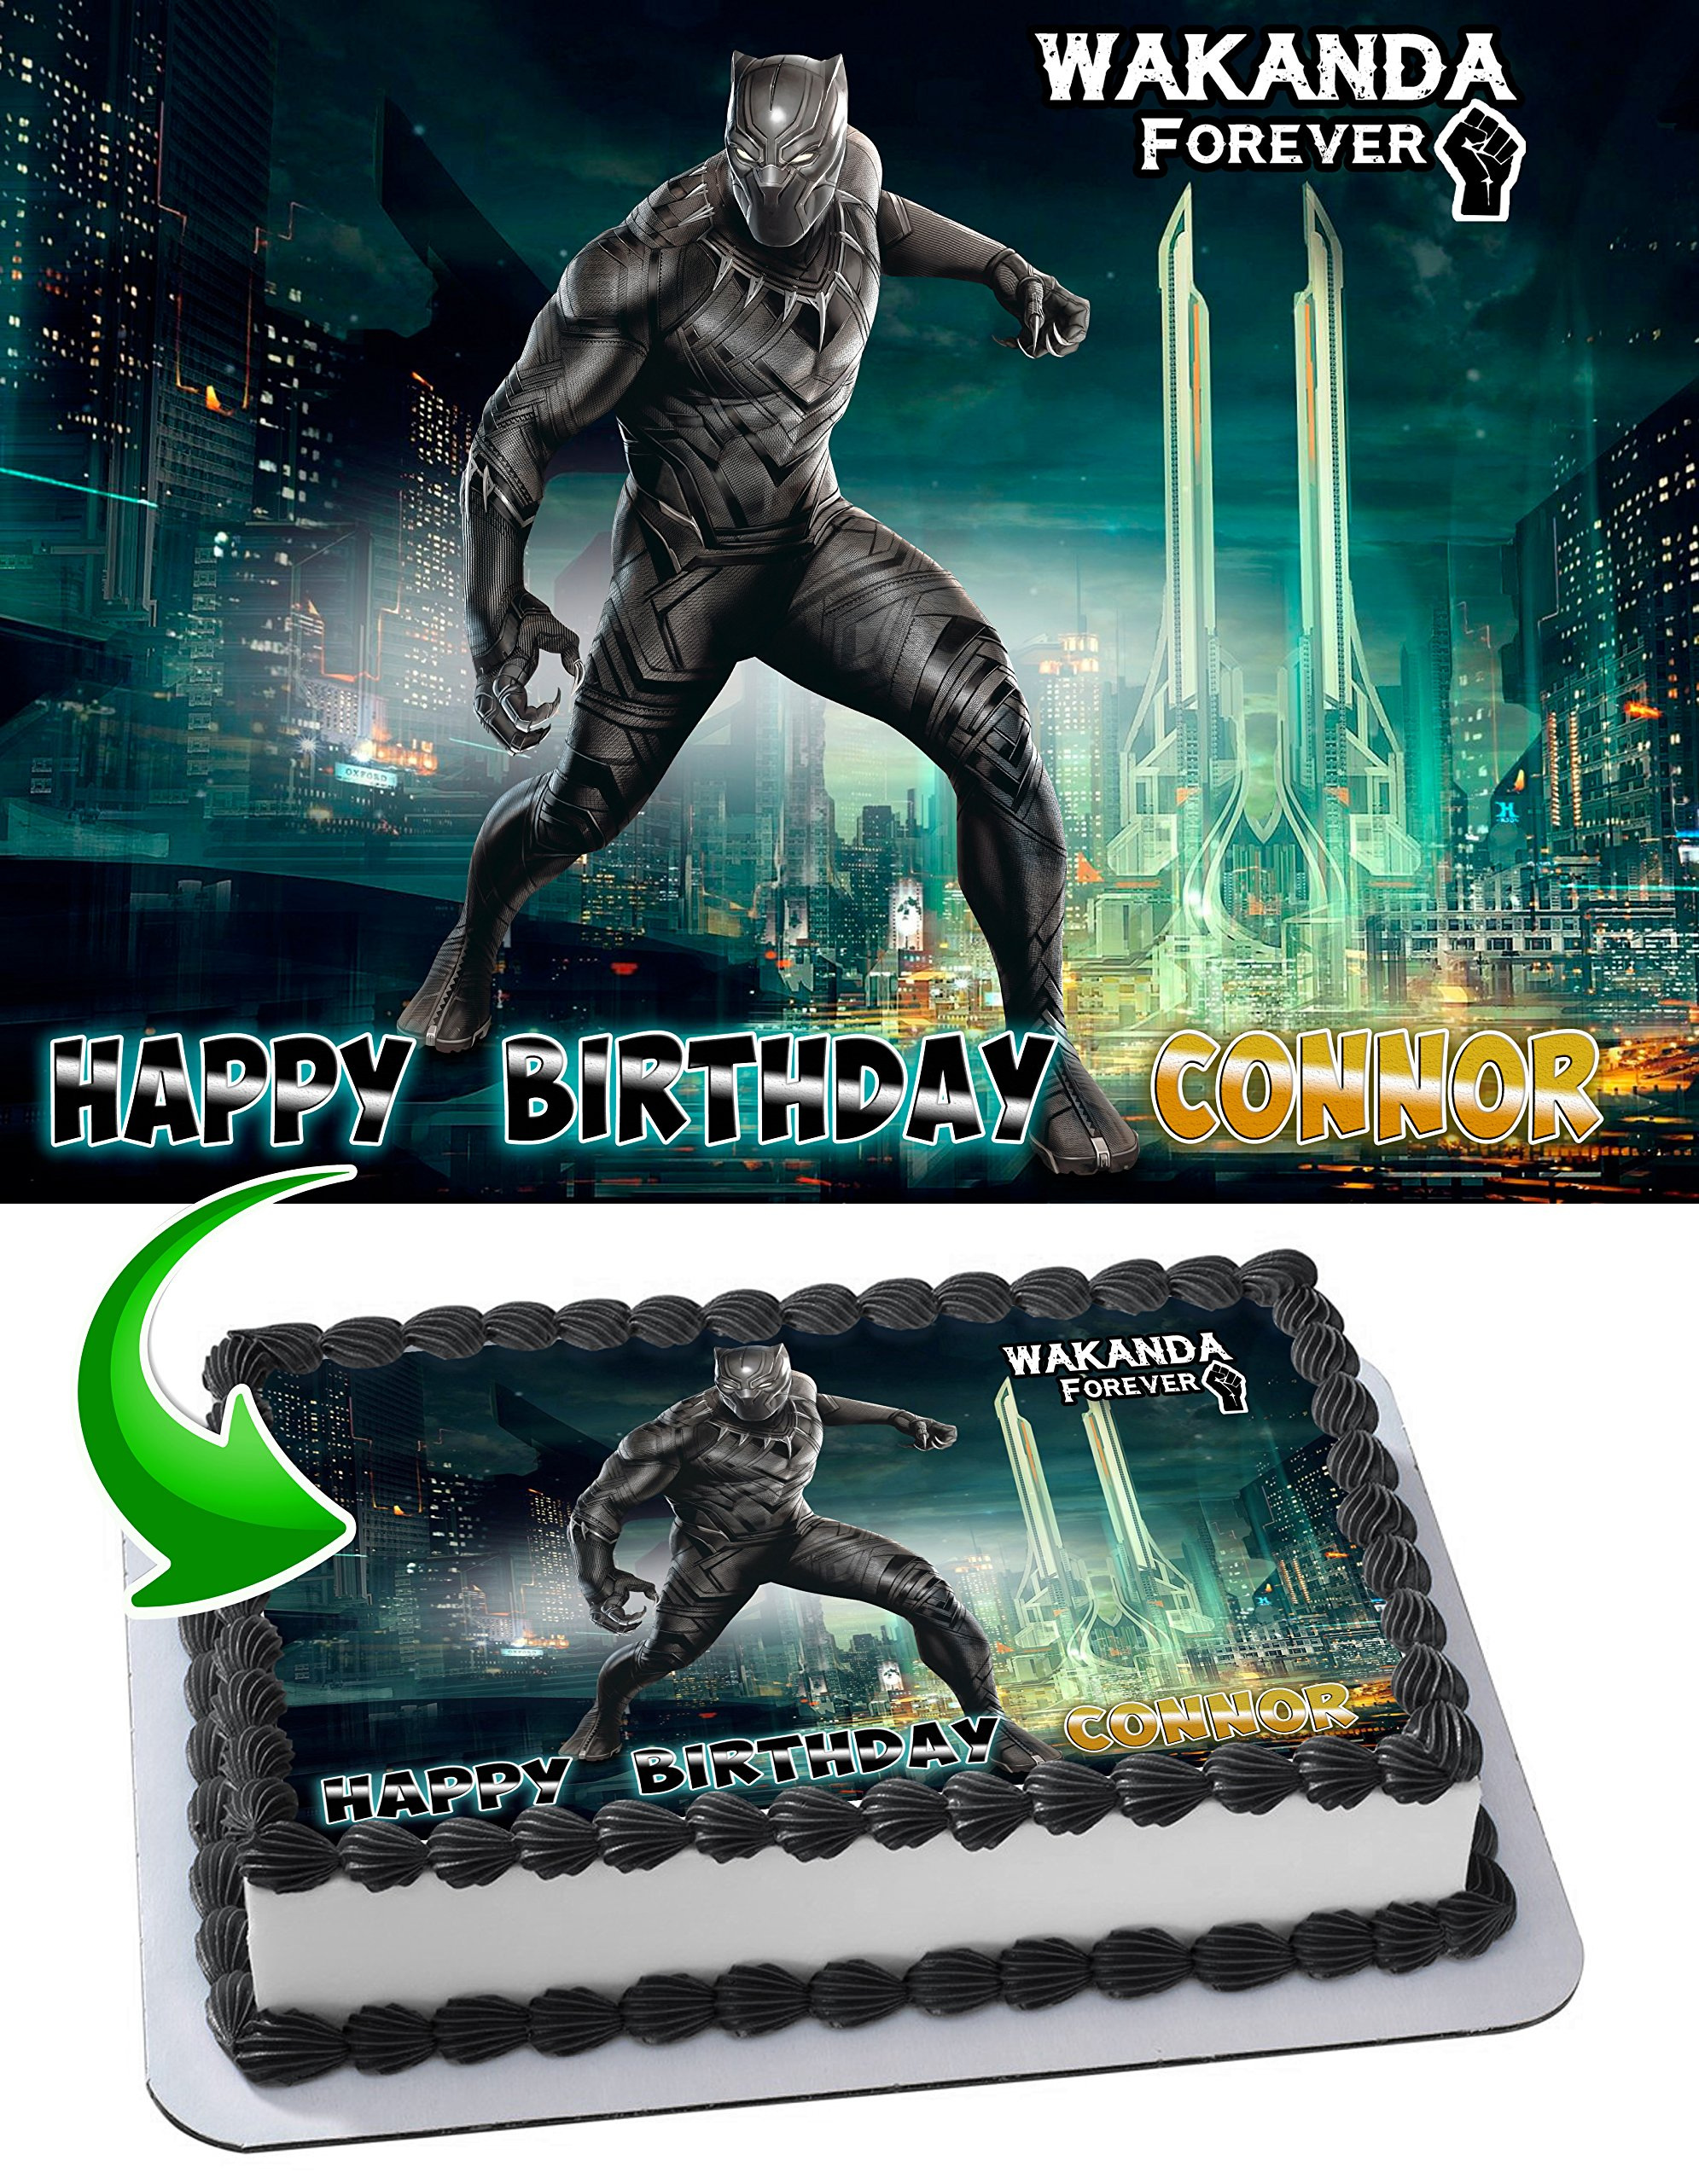 Black Panther Wakanda Forever Edible Image Cake Topper Personalized Icing Sugar Paper A4 Sheet Edible Frosting Photo Cake 1/4 ~ Best Quality Edible Image for cake